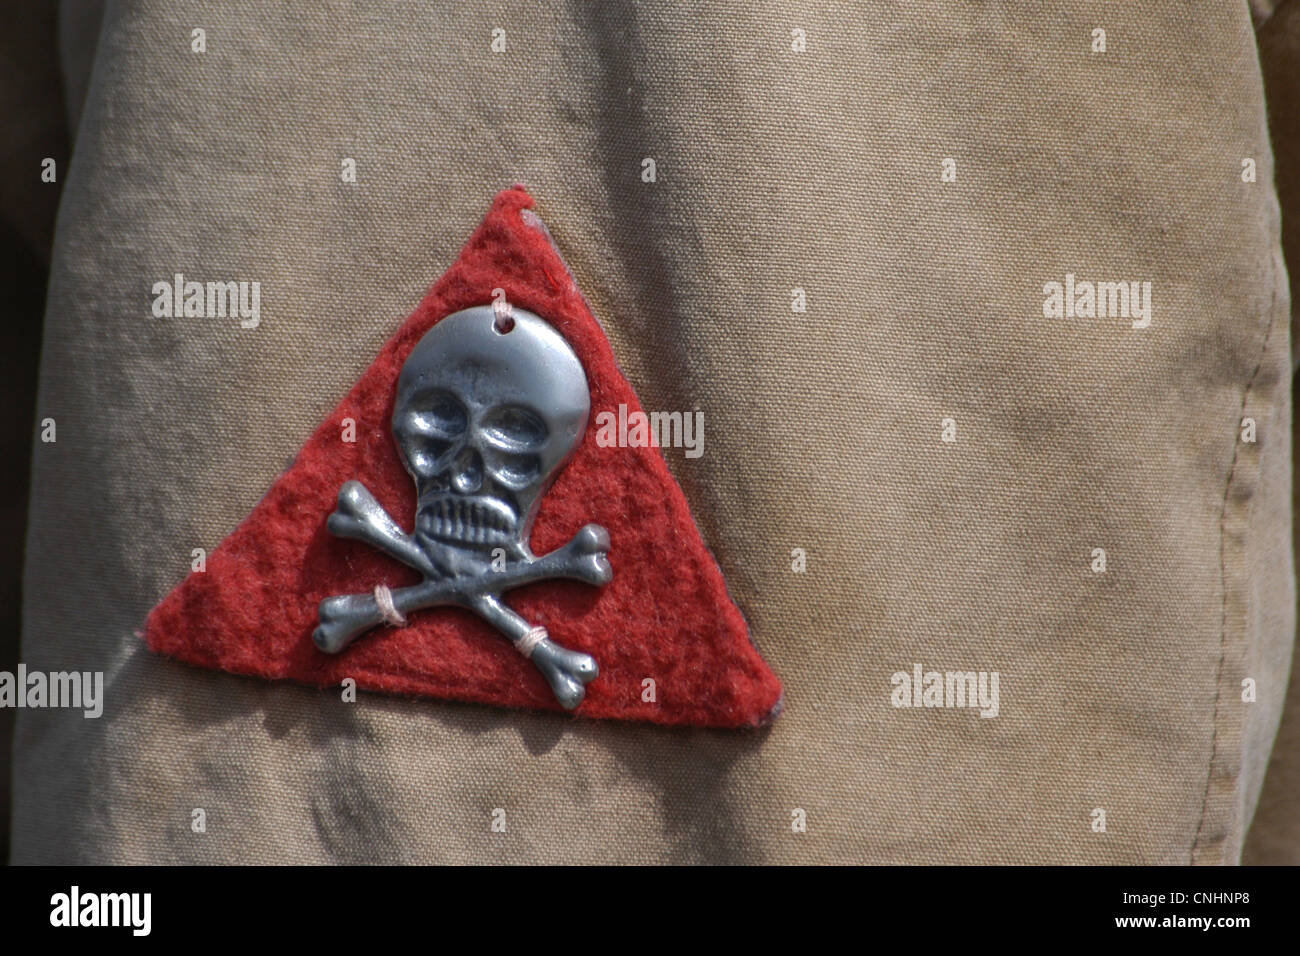 Deaths head totenkopf emblem of the czechoslovak legions in emblem of the czechoslovak legions in russia during the russian civil war biocorpaavc Choice Image